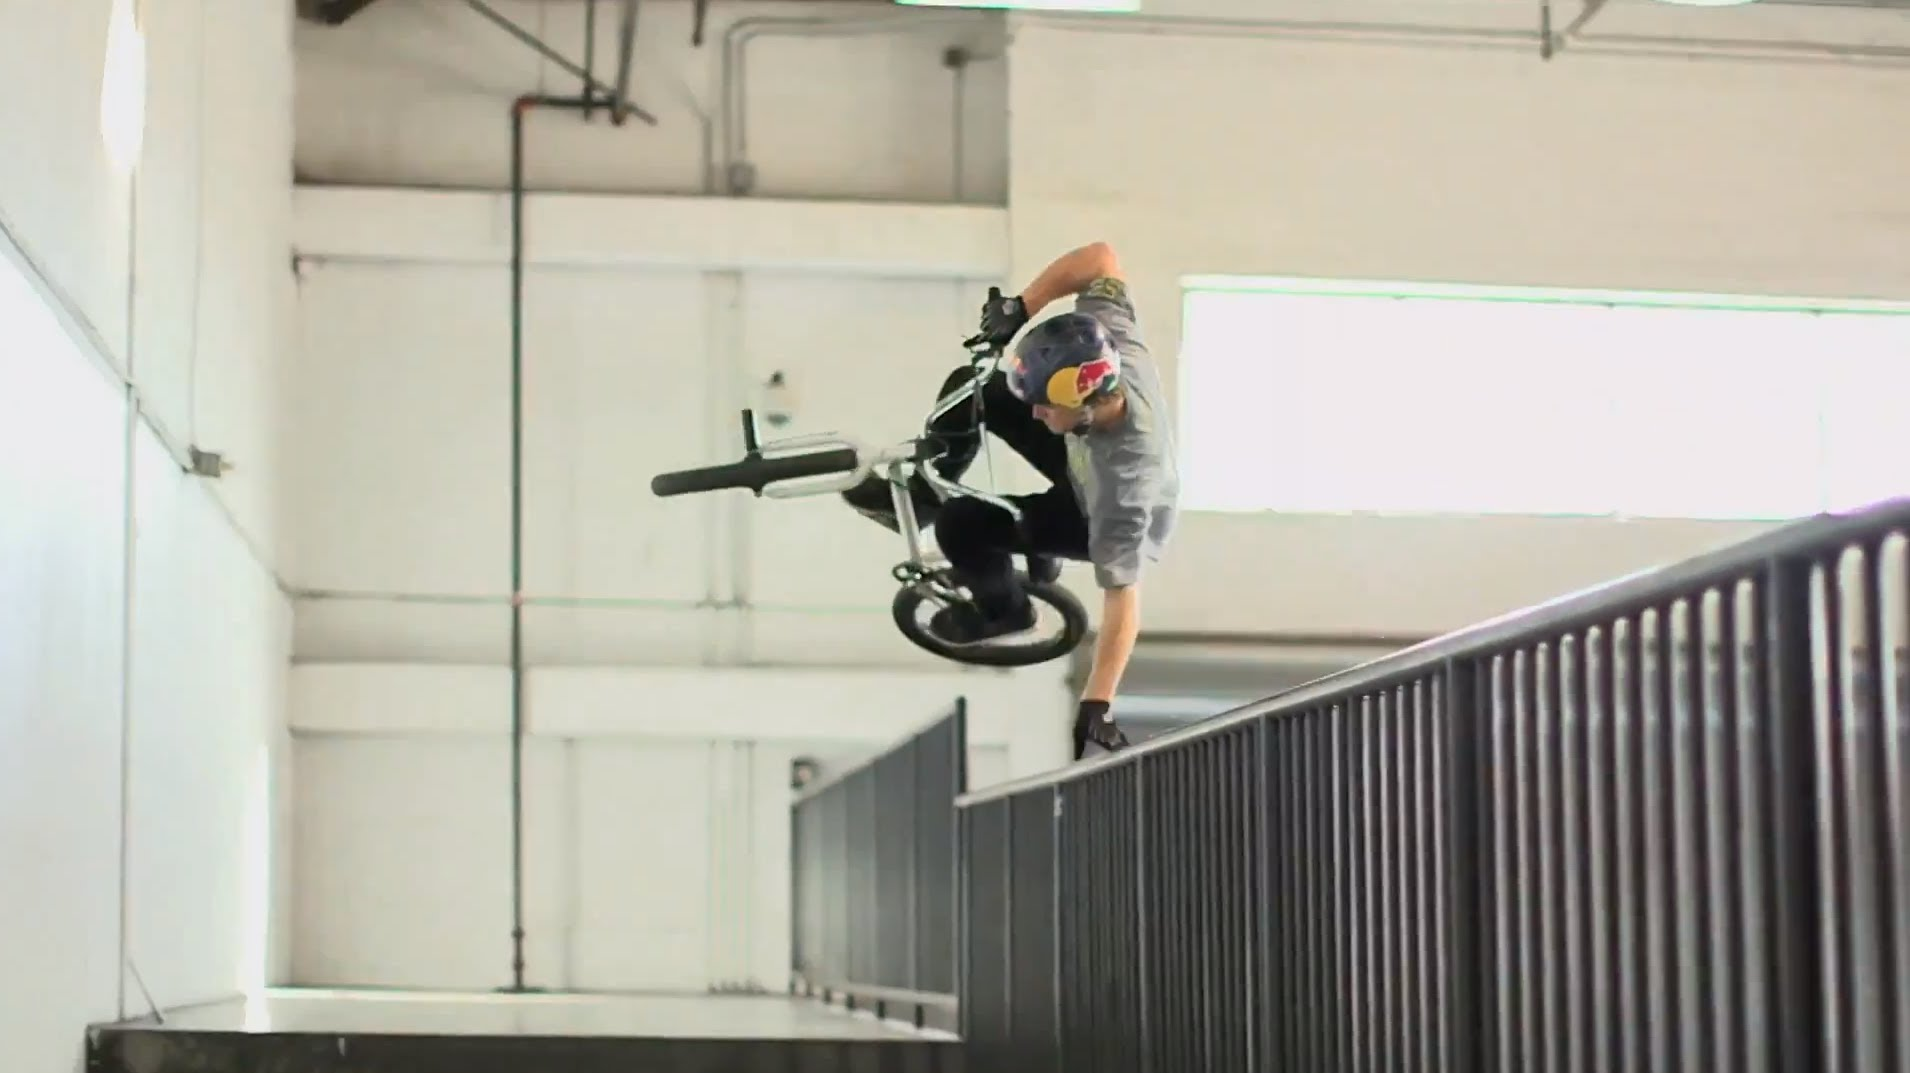 Drew Bezanson and Friends Ride a Mini Ramp